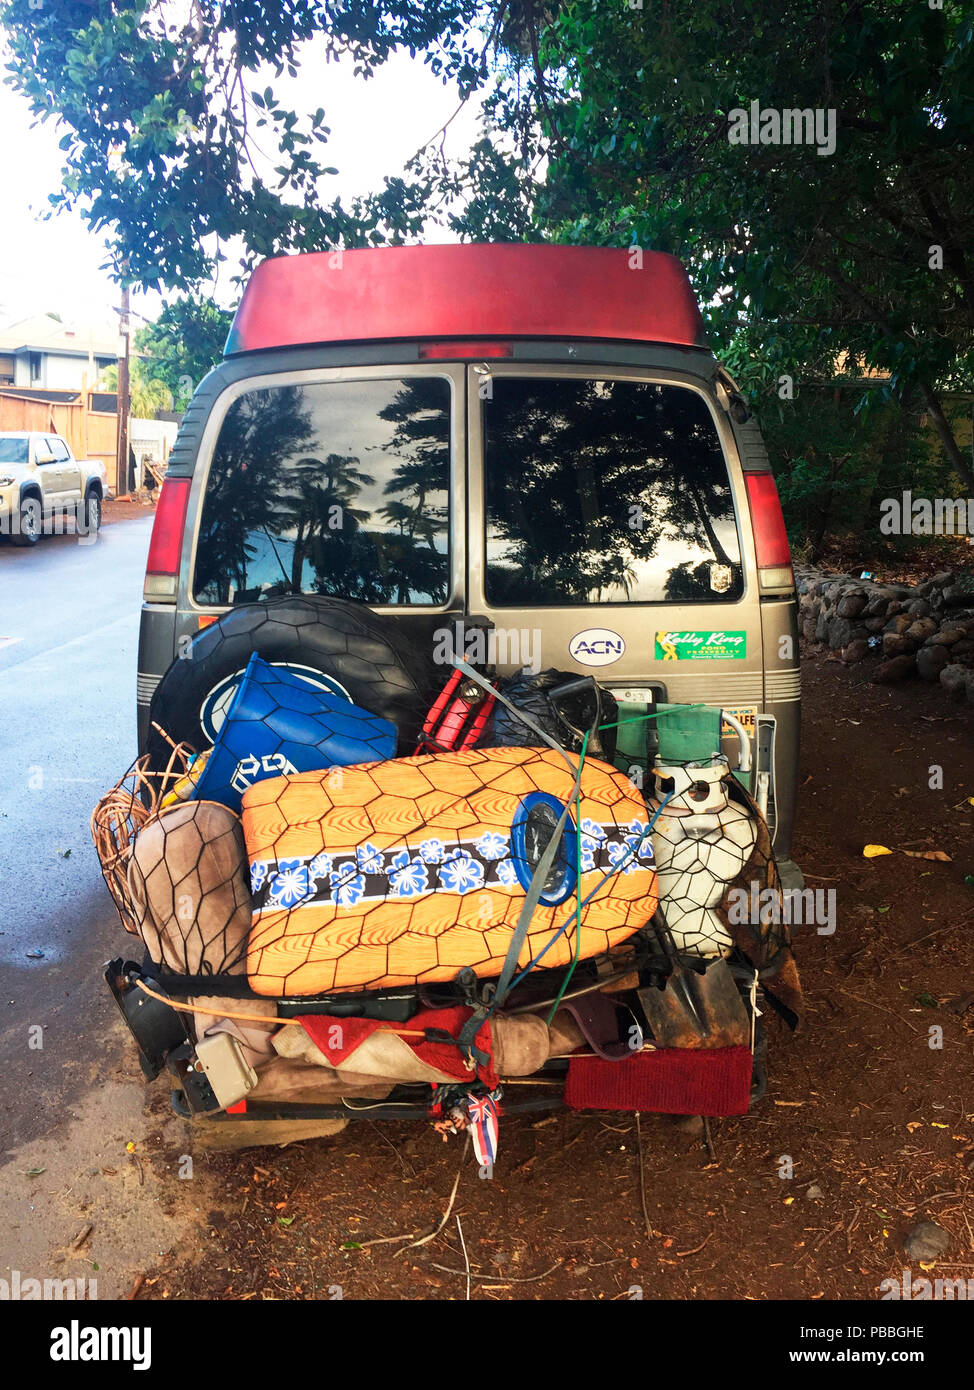 A van with all the essentials needed for a day at the beach or longer stay  is parked outside Charley Young beach, S.Kihei, Maui, USA. - Stock Image